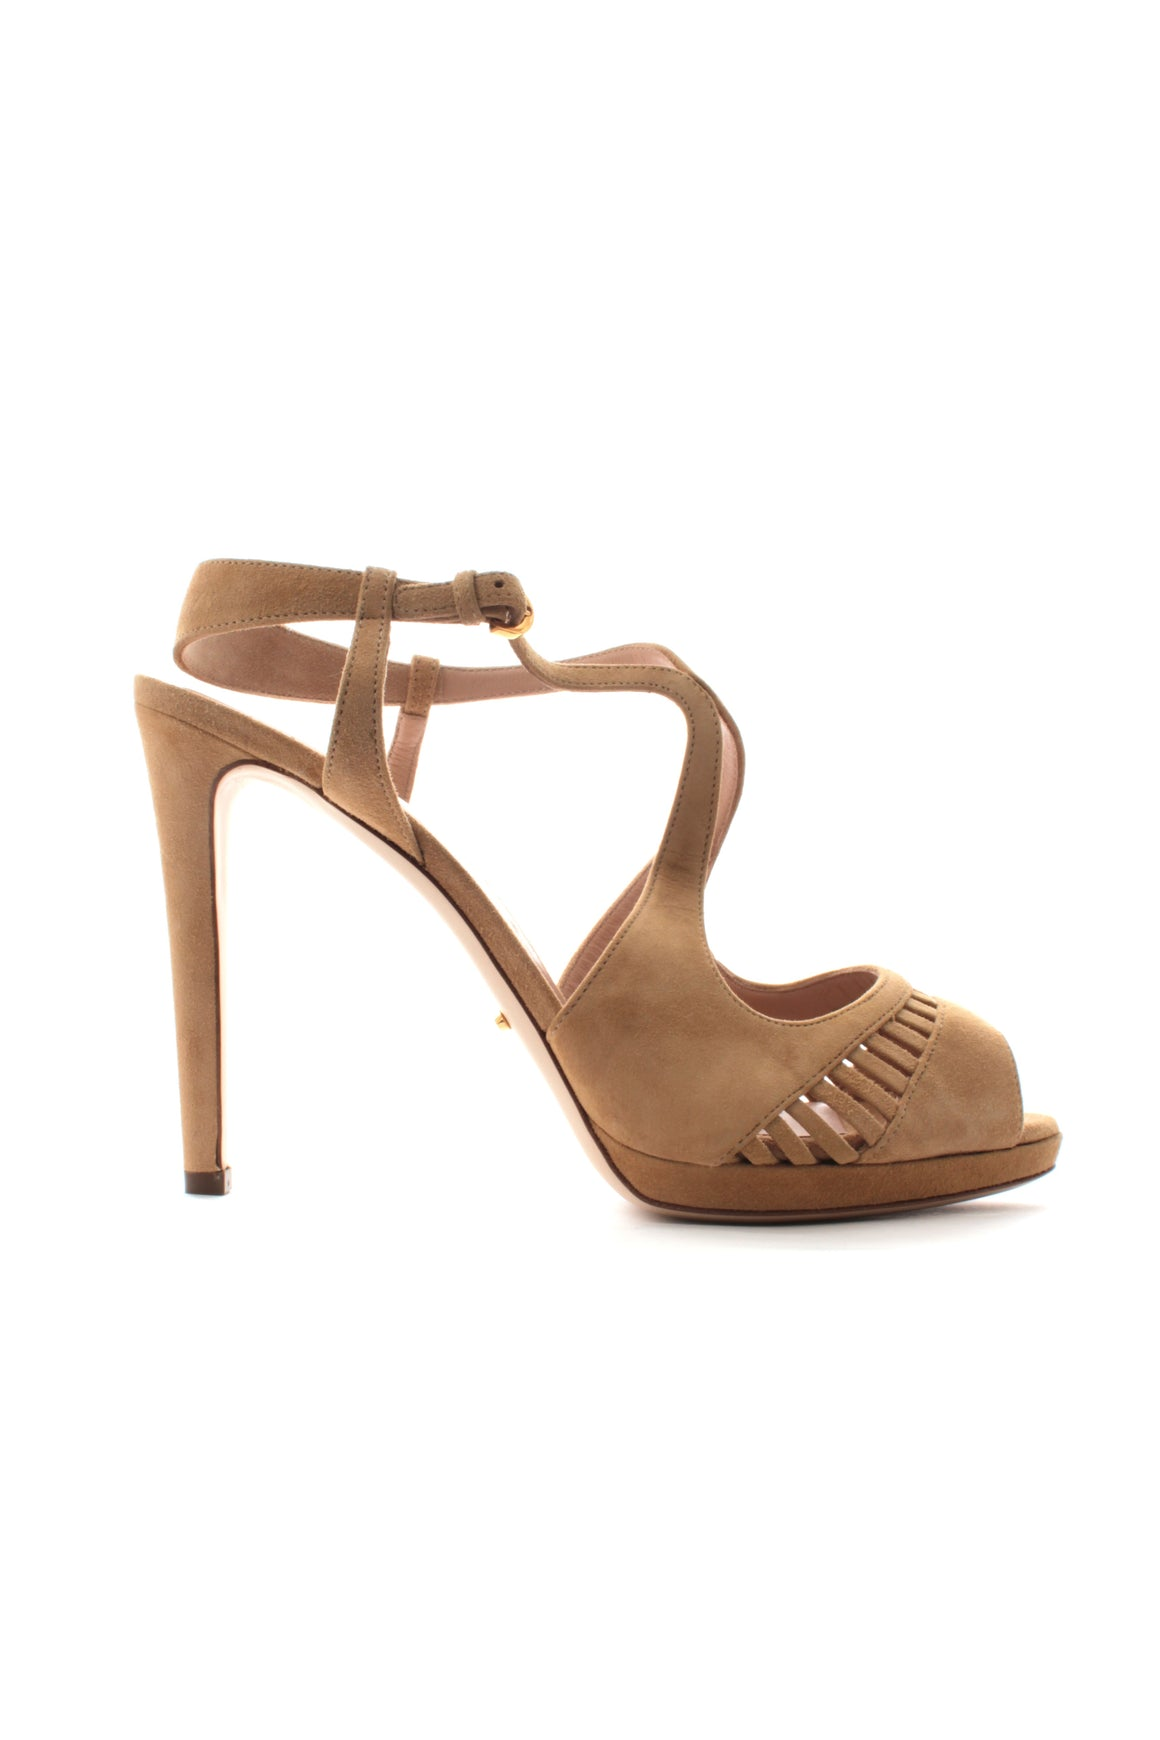 Sergio Rossi Suede Cut Out Sandals